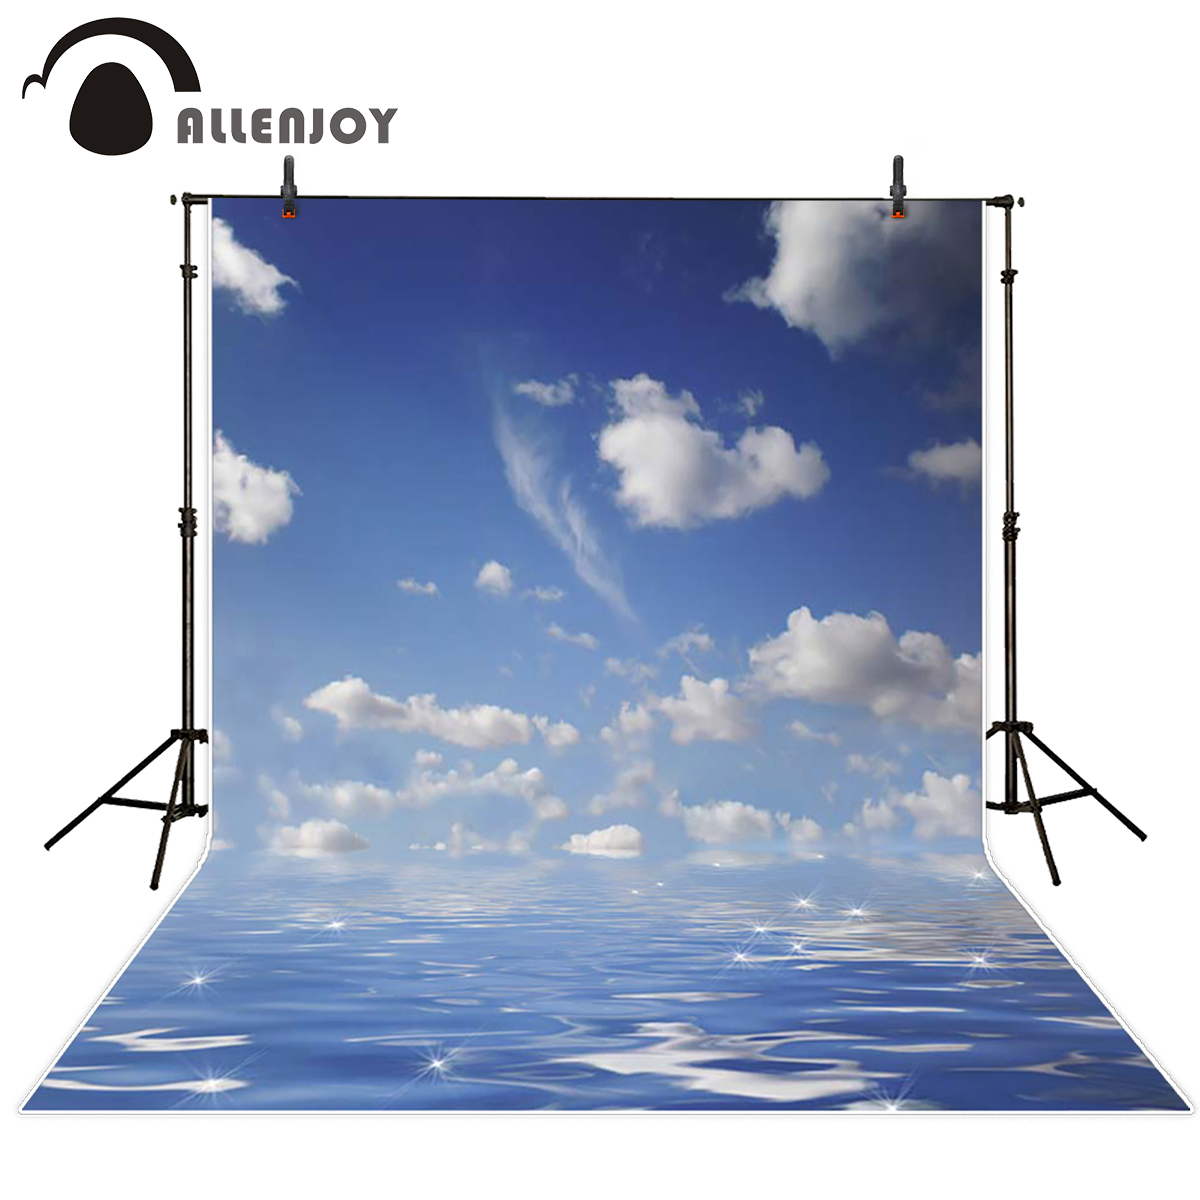 Allenjoy scenic Photo background Sea clouds sky shiny sparkling water photography Vinyl photography backdrops photo studio